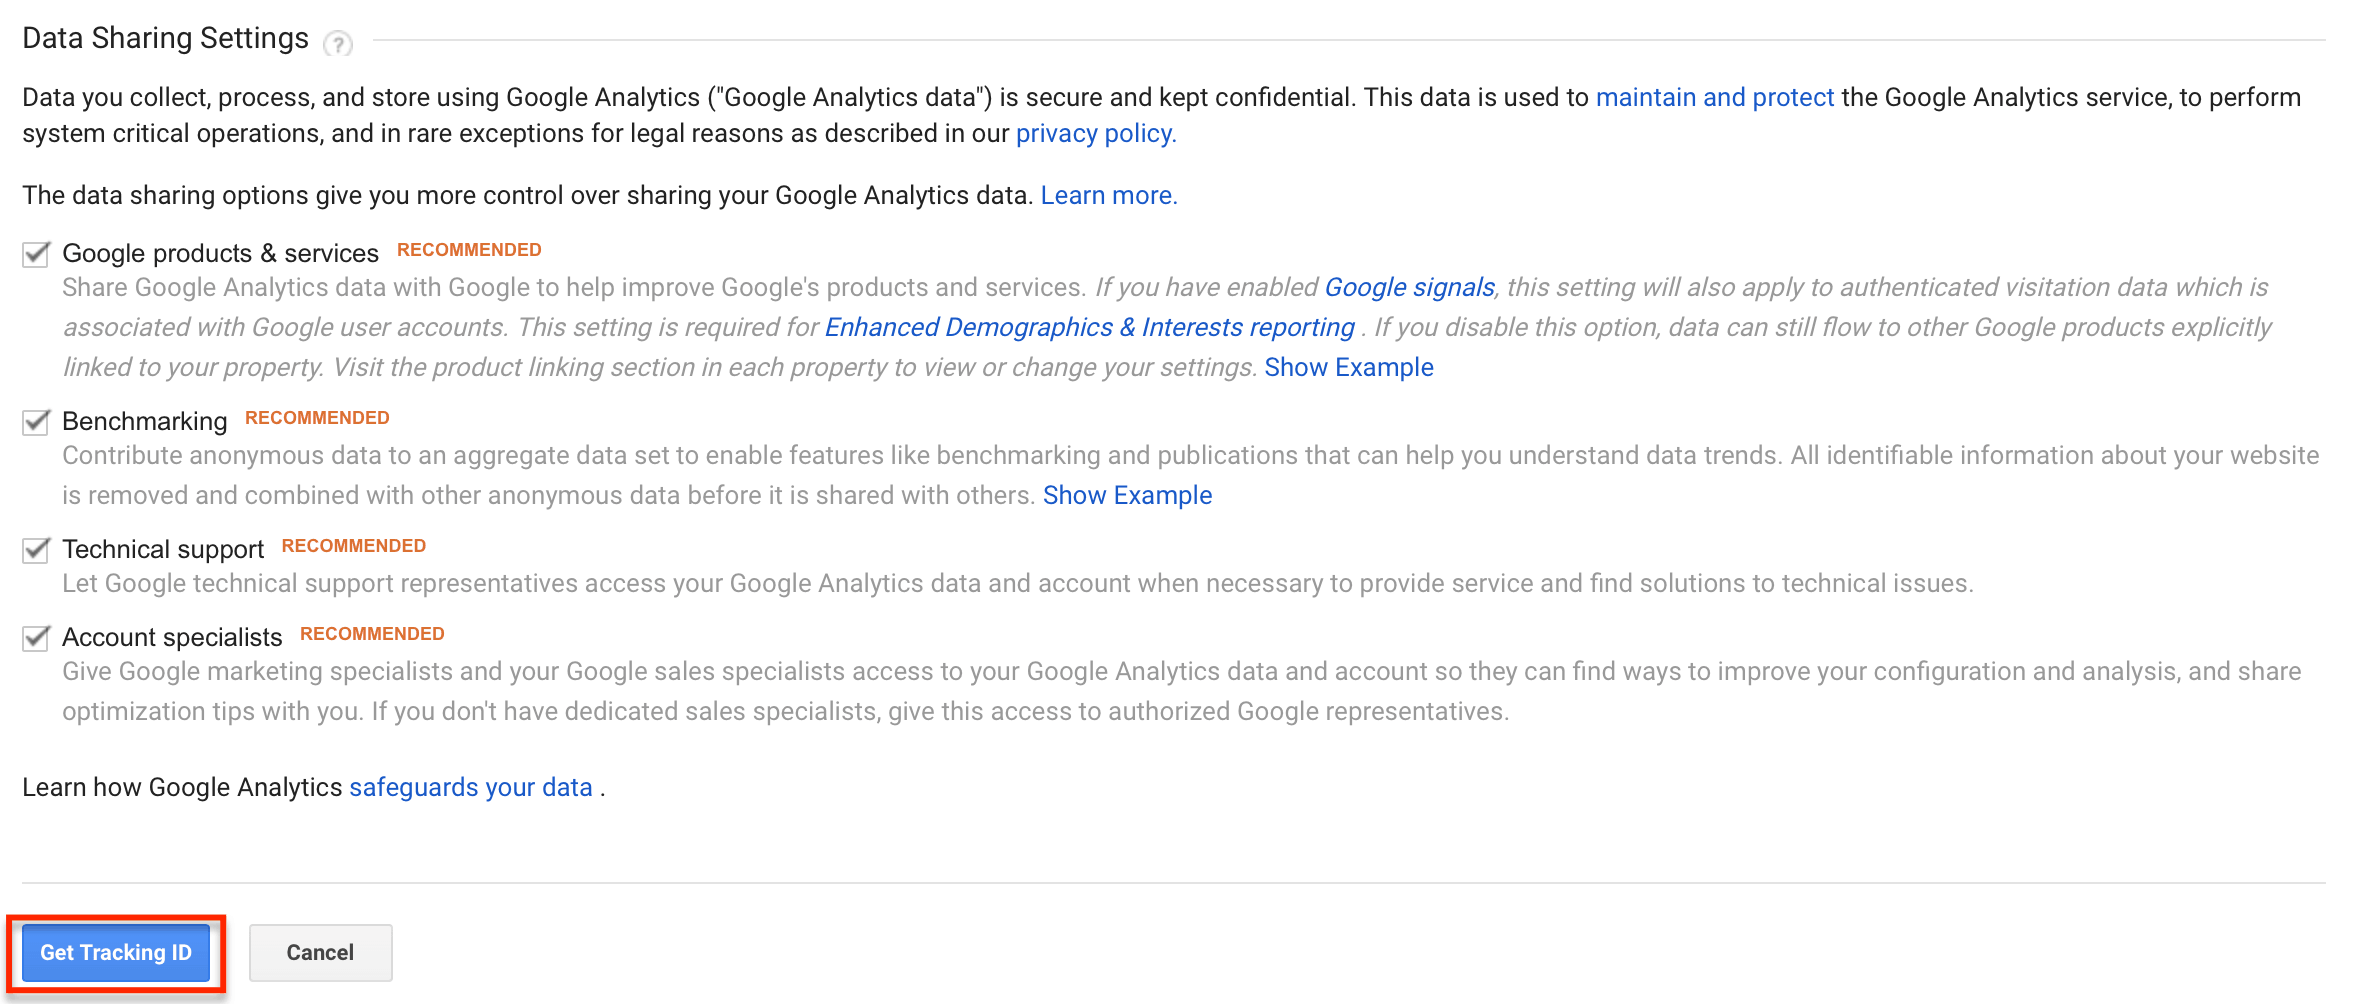 The Ultimate Beginner's Guide to Google Analytics-image4